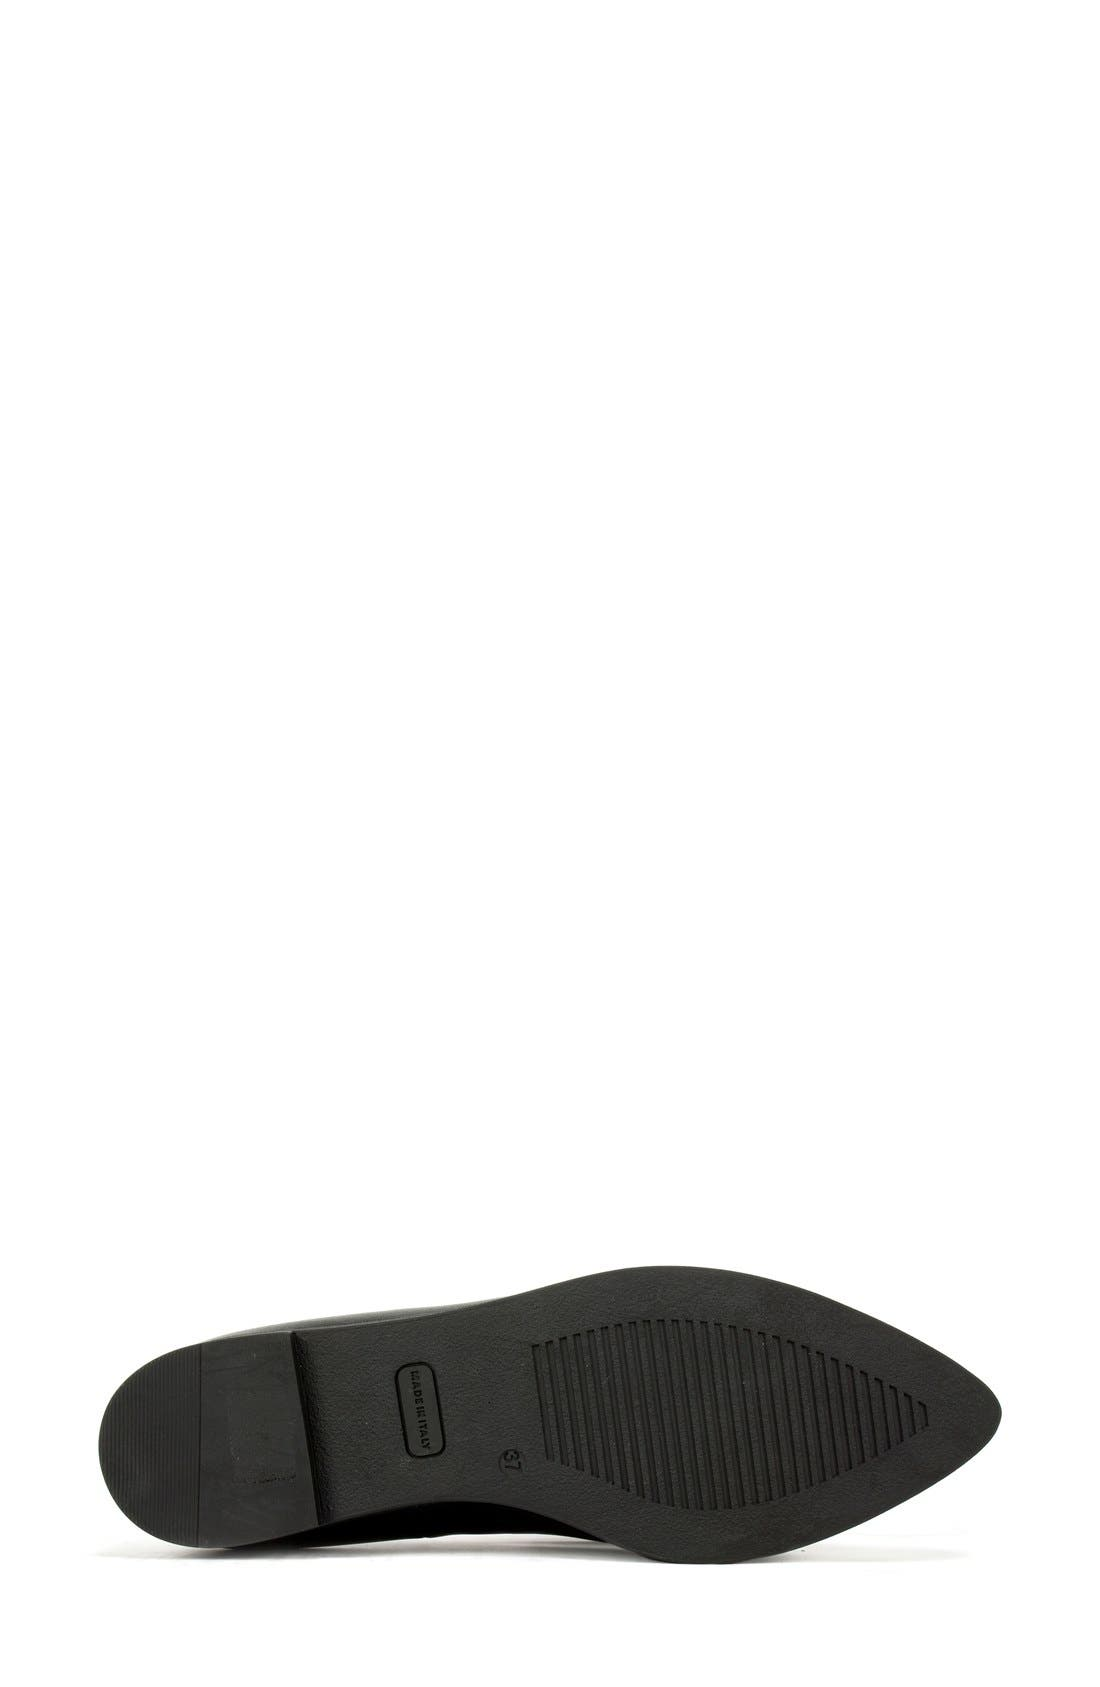 Alternate Image 4  - Summit 'Elena' Fringed Platform Loafer (Women)